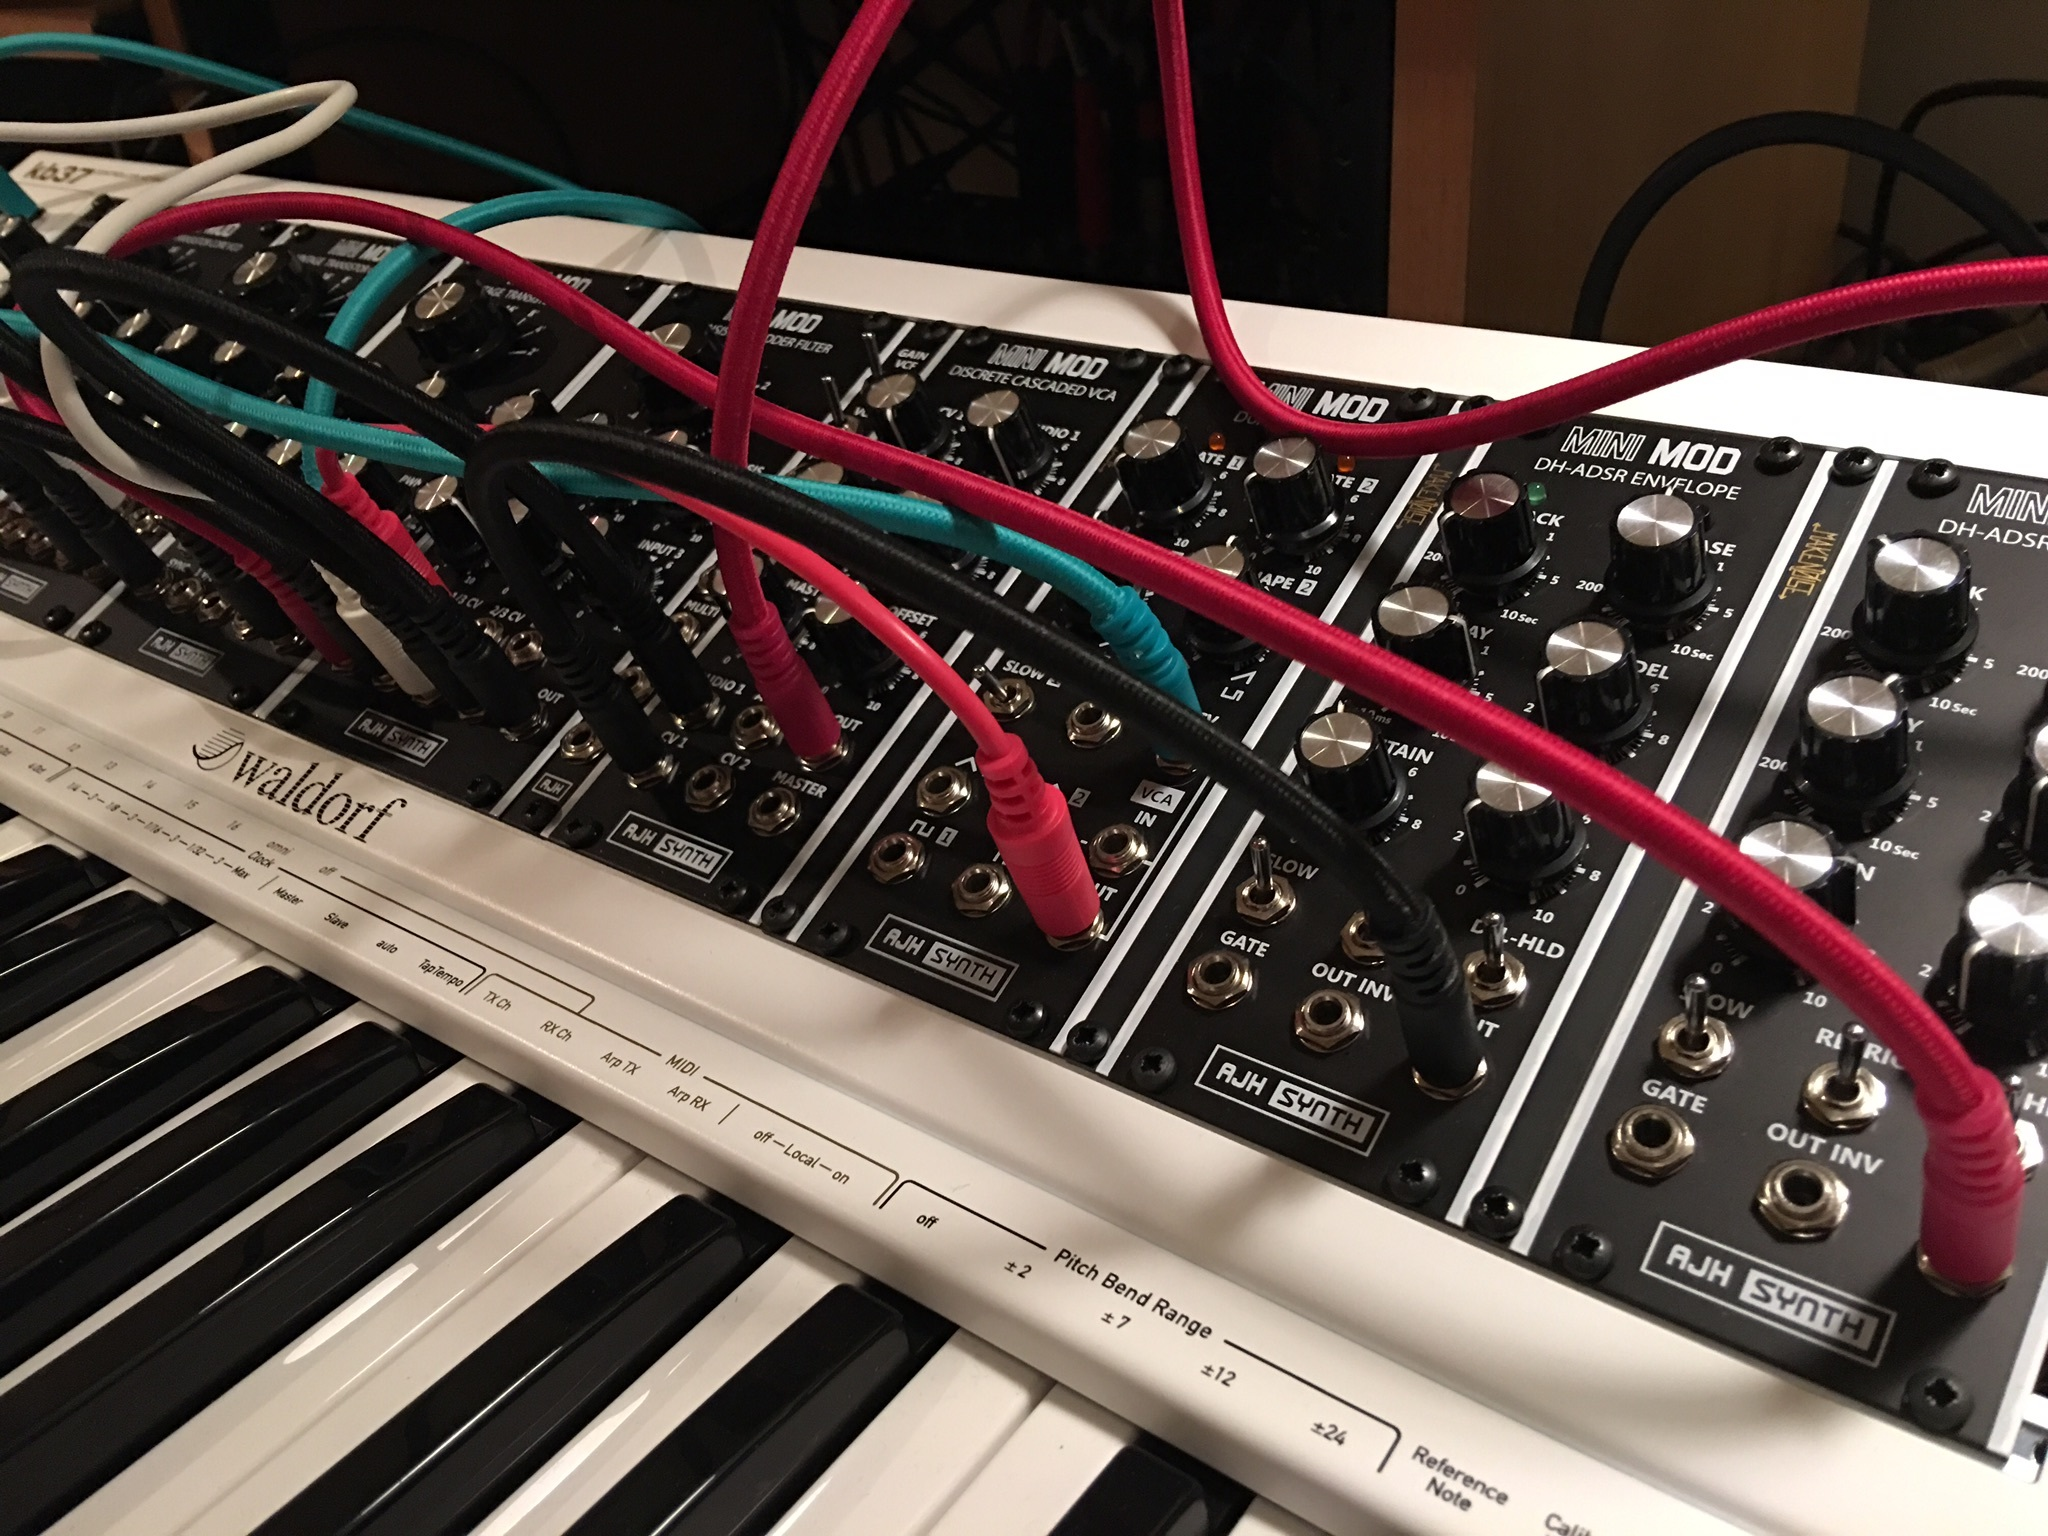 fs uk ajh synth dh adsr and noise glide modules marketplace sell elektronauts. Black Bedroom Furniture Sets. Home Design Ideas